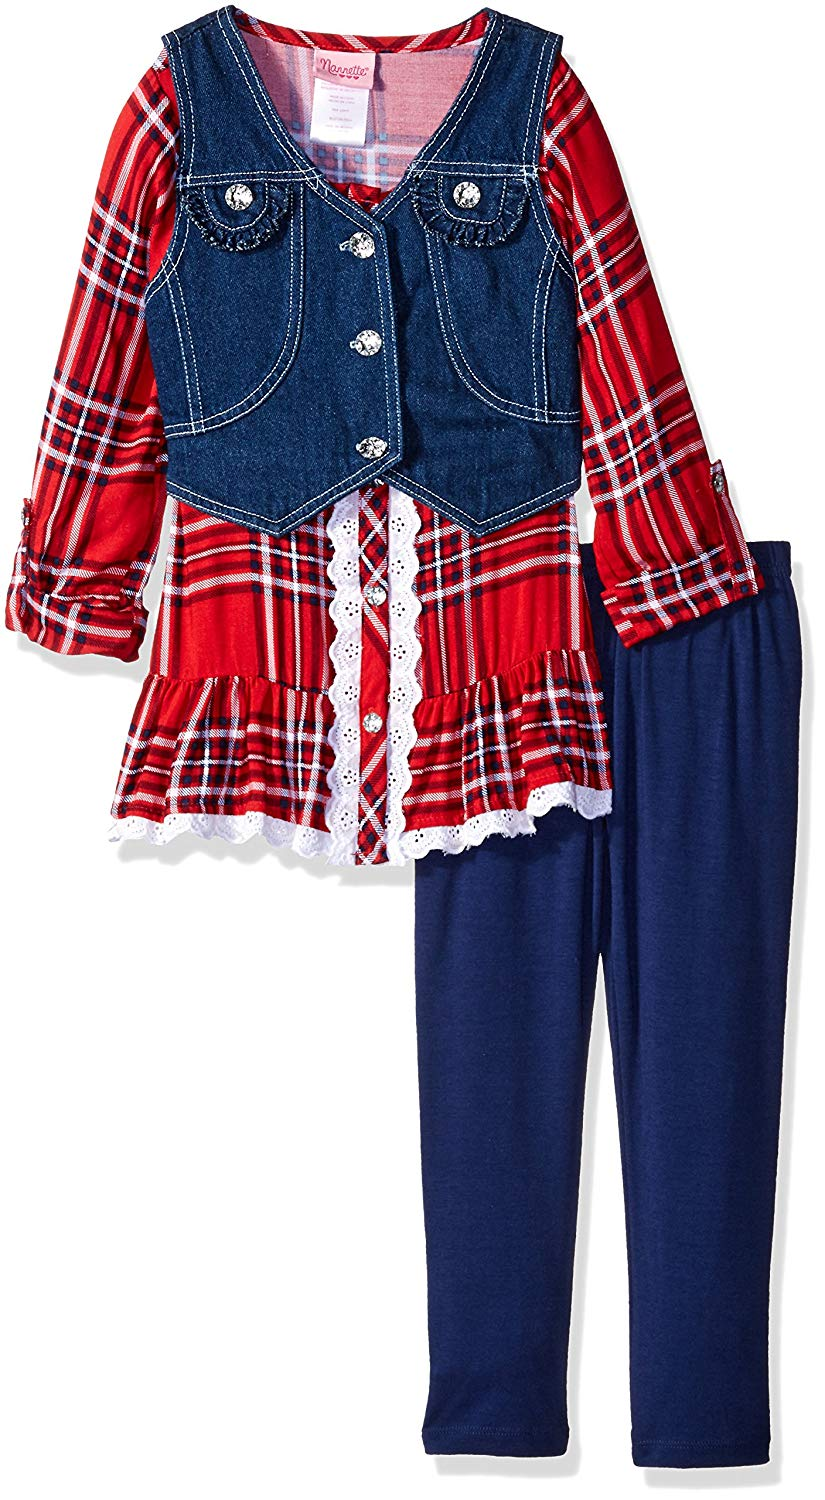 8c7e13157 Get Quotations · Nannette Girls' 3 Piece Legging Set with A Plaid Shirt and  Denim Vest